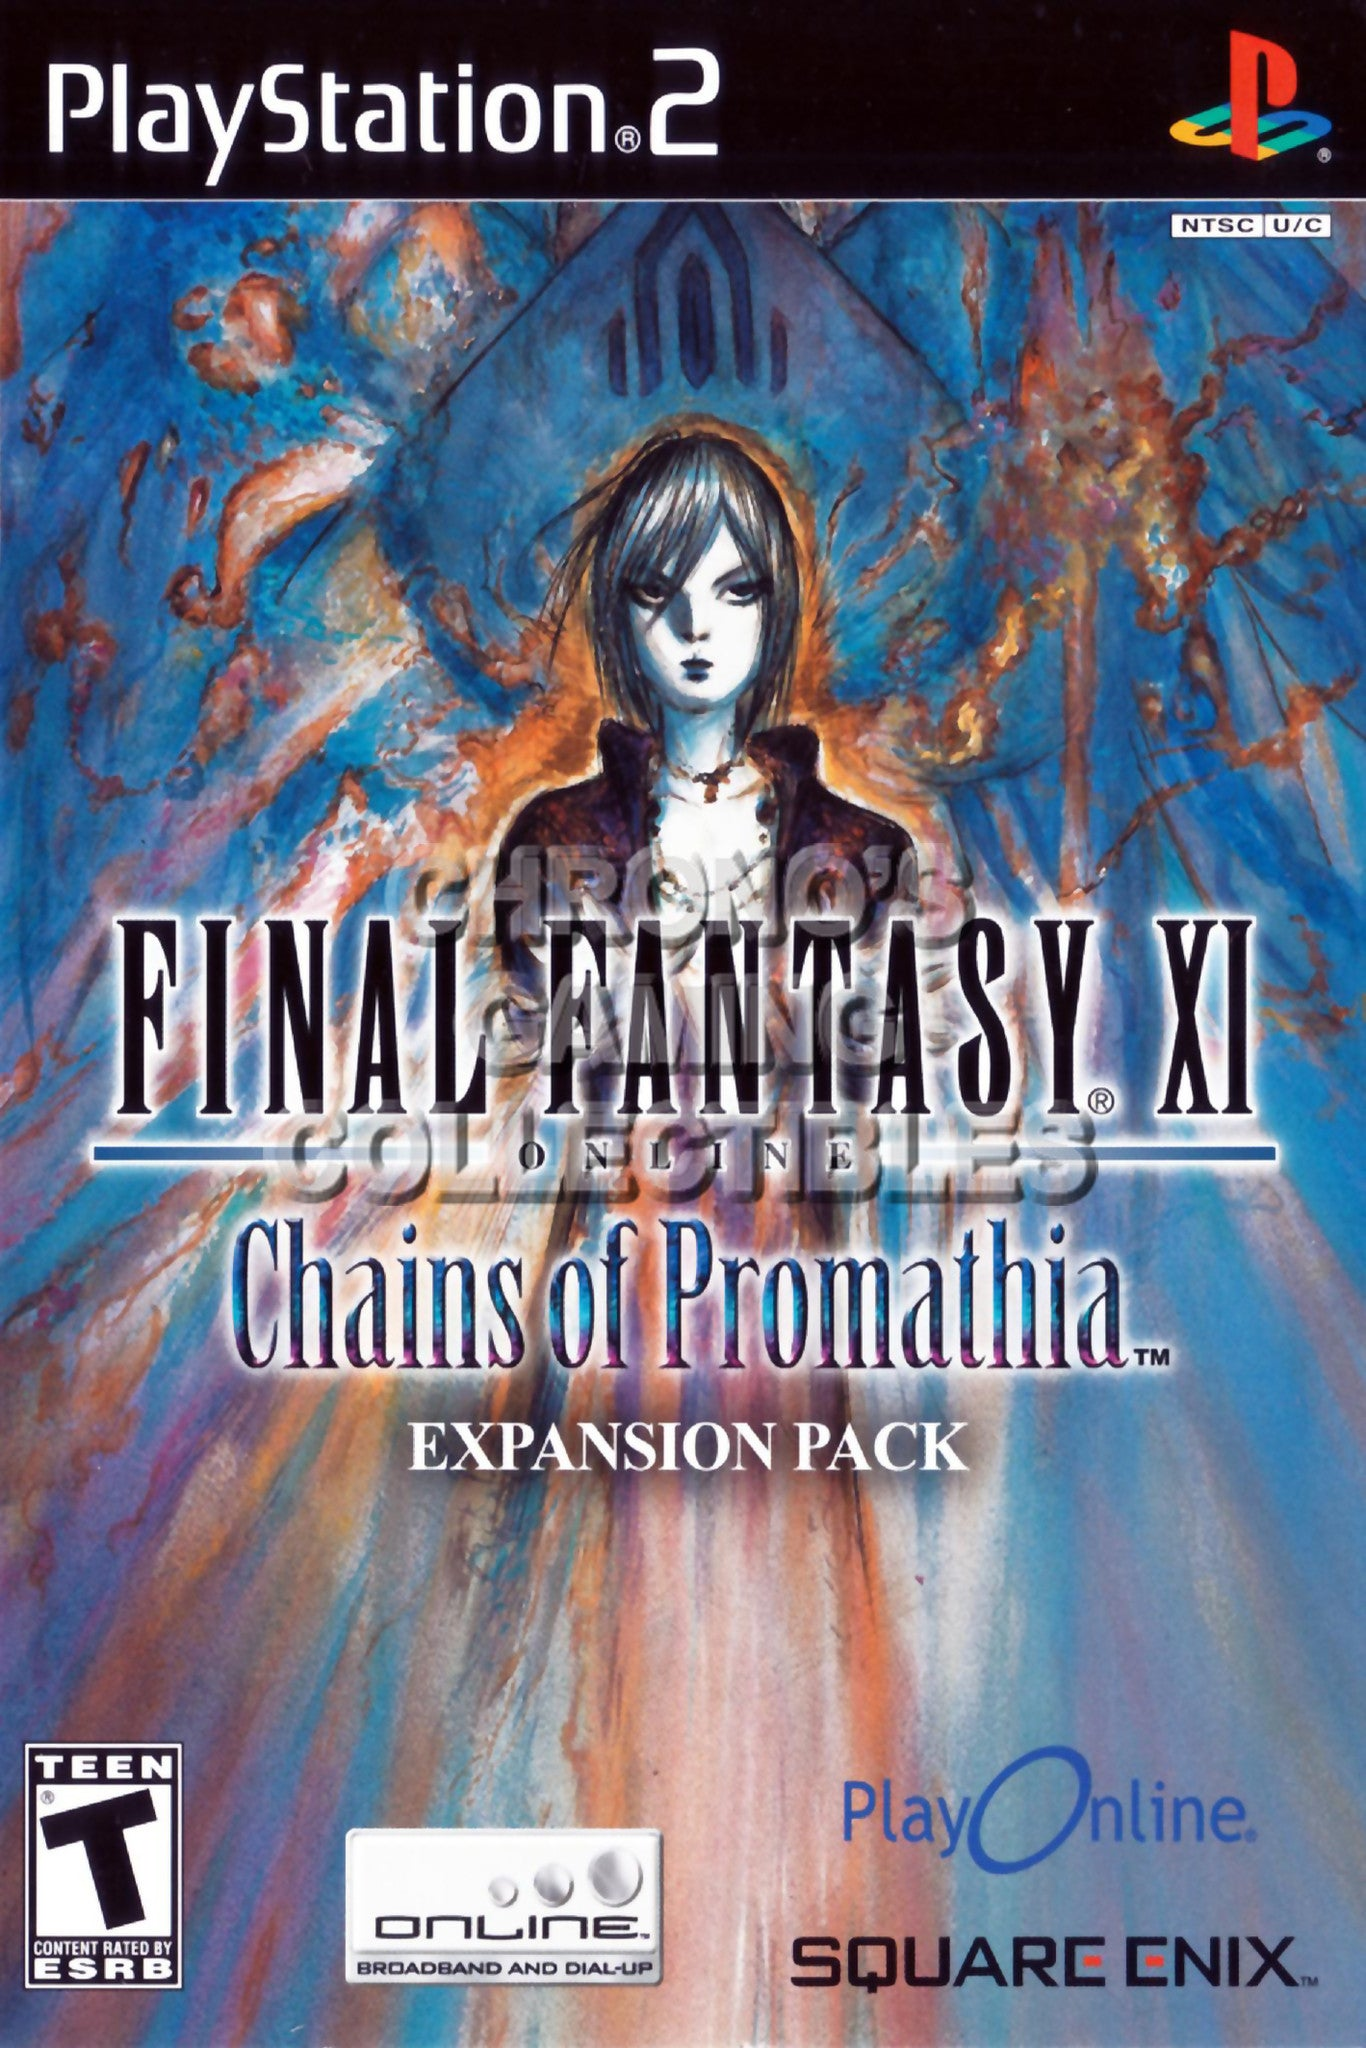 CGC Huge Poster - Final Fantasy XI Online Chains of Promathia - BOX ART  Sony Plastation 2 PS2 - PS2106